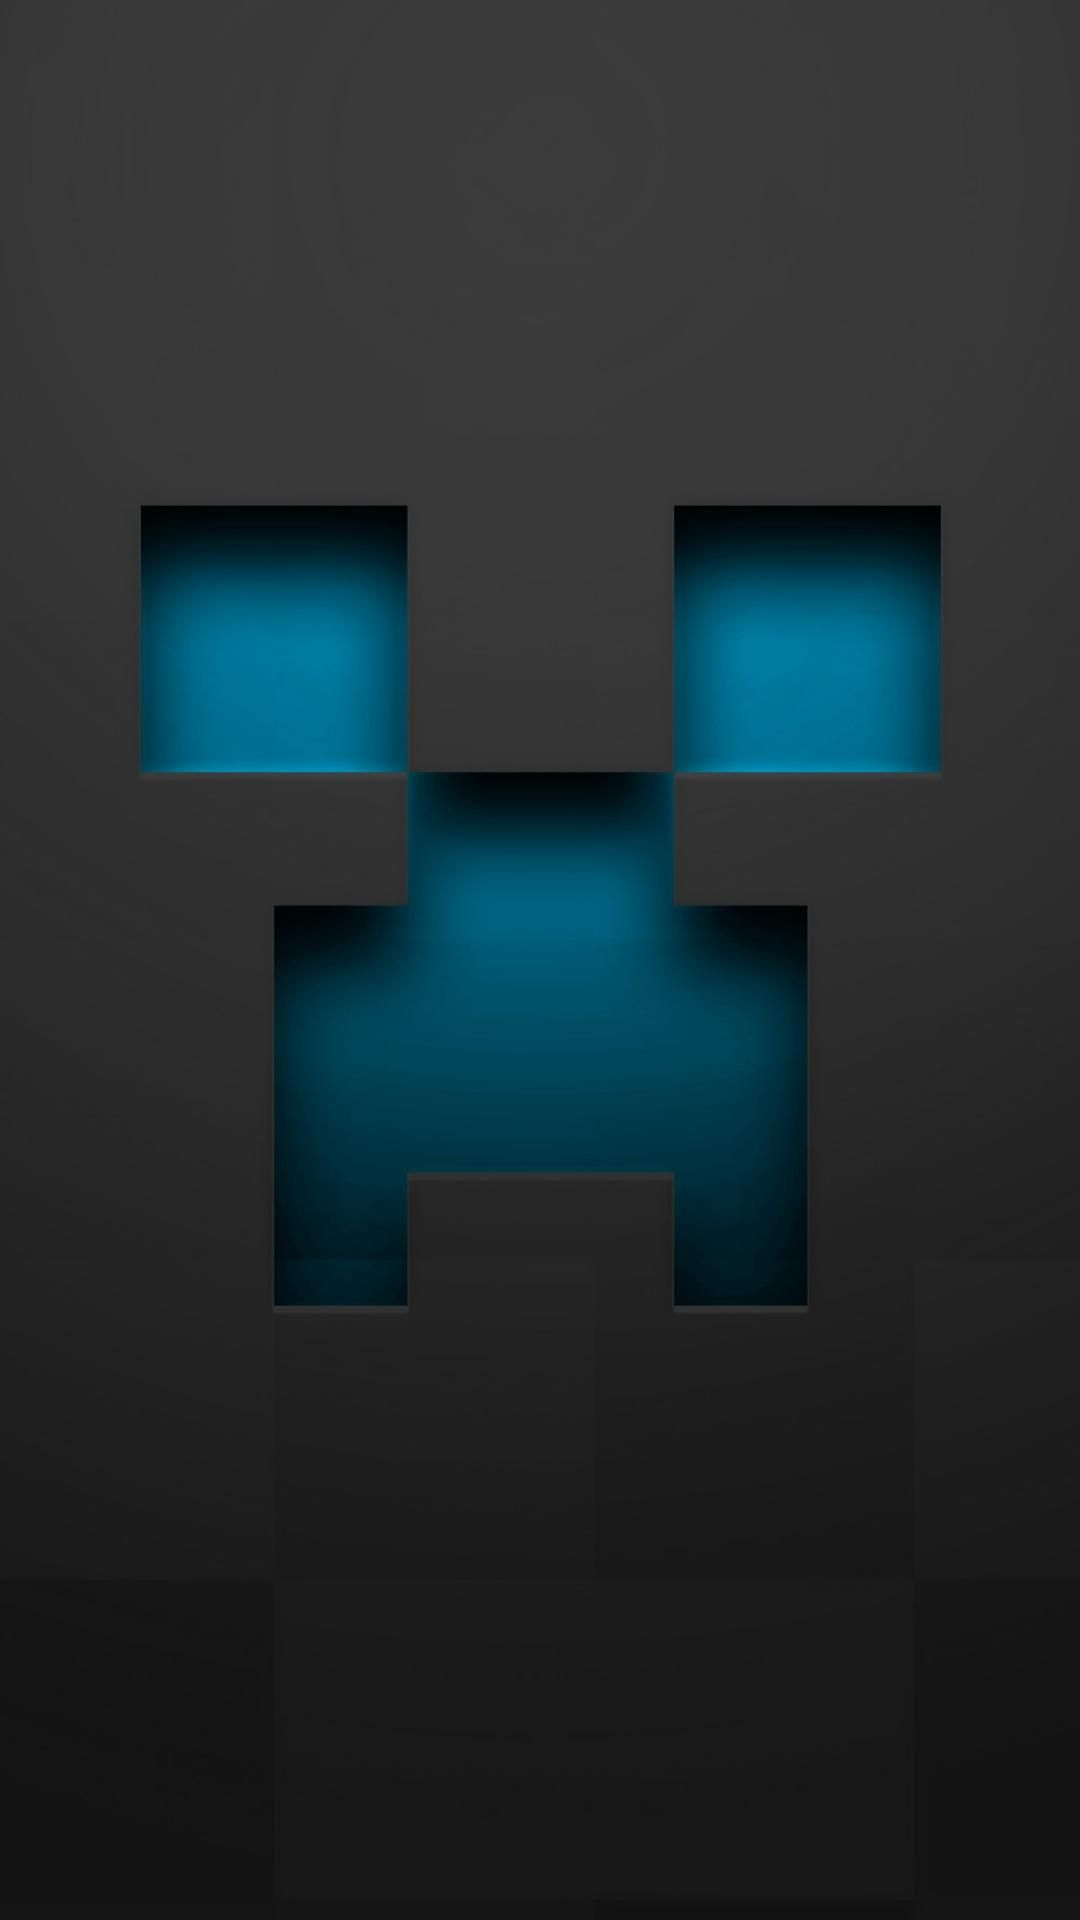 Minecraft Black Wallpaper